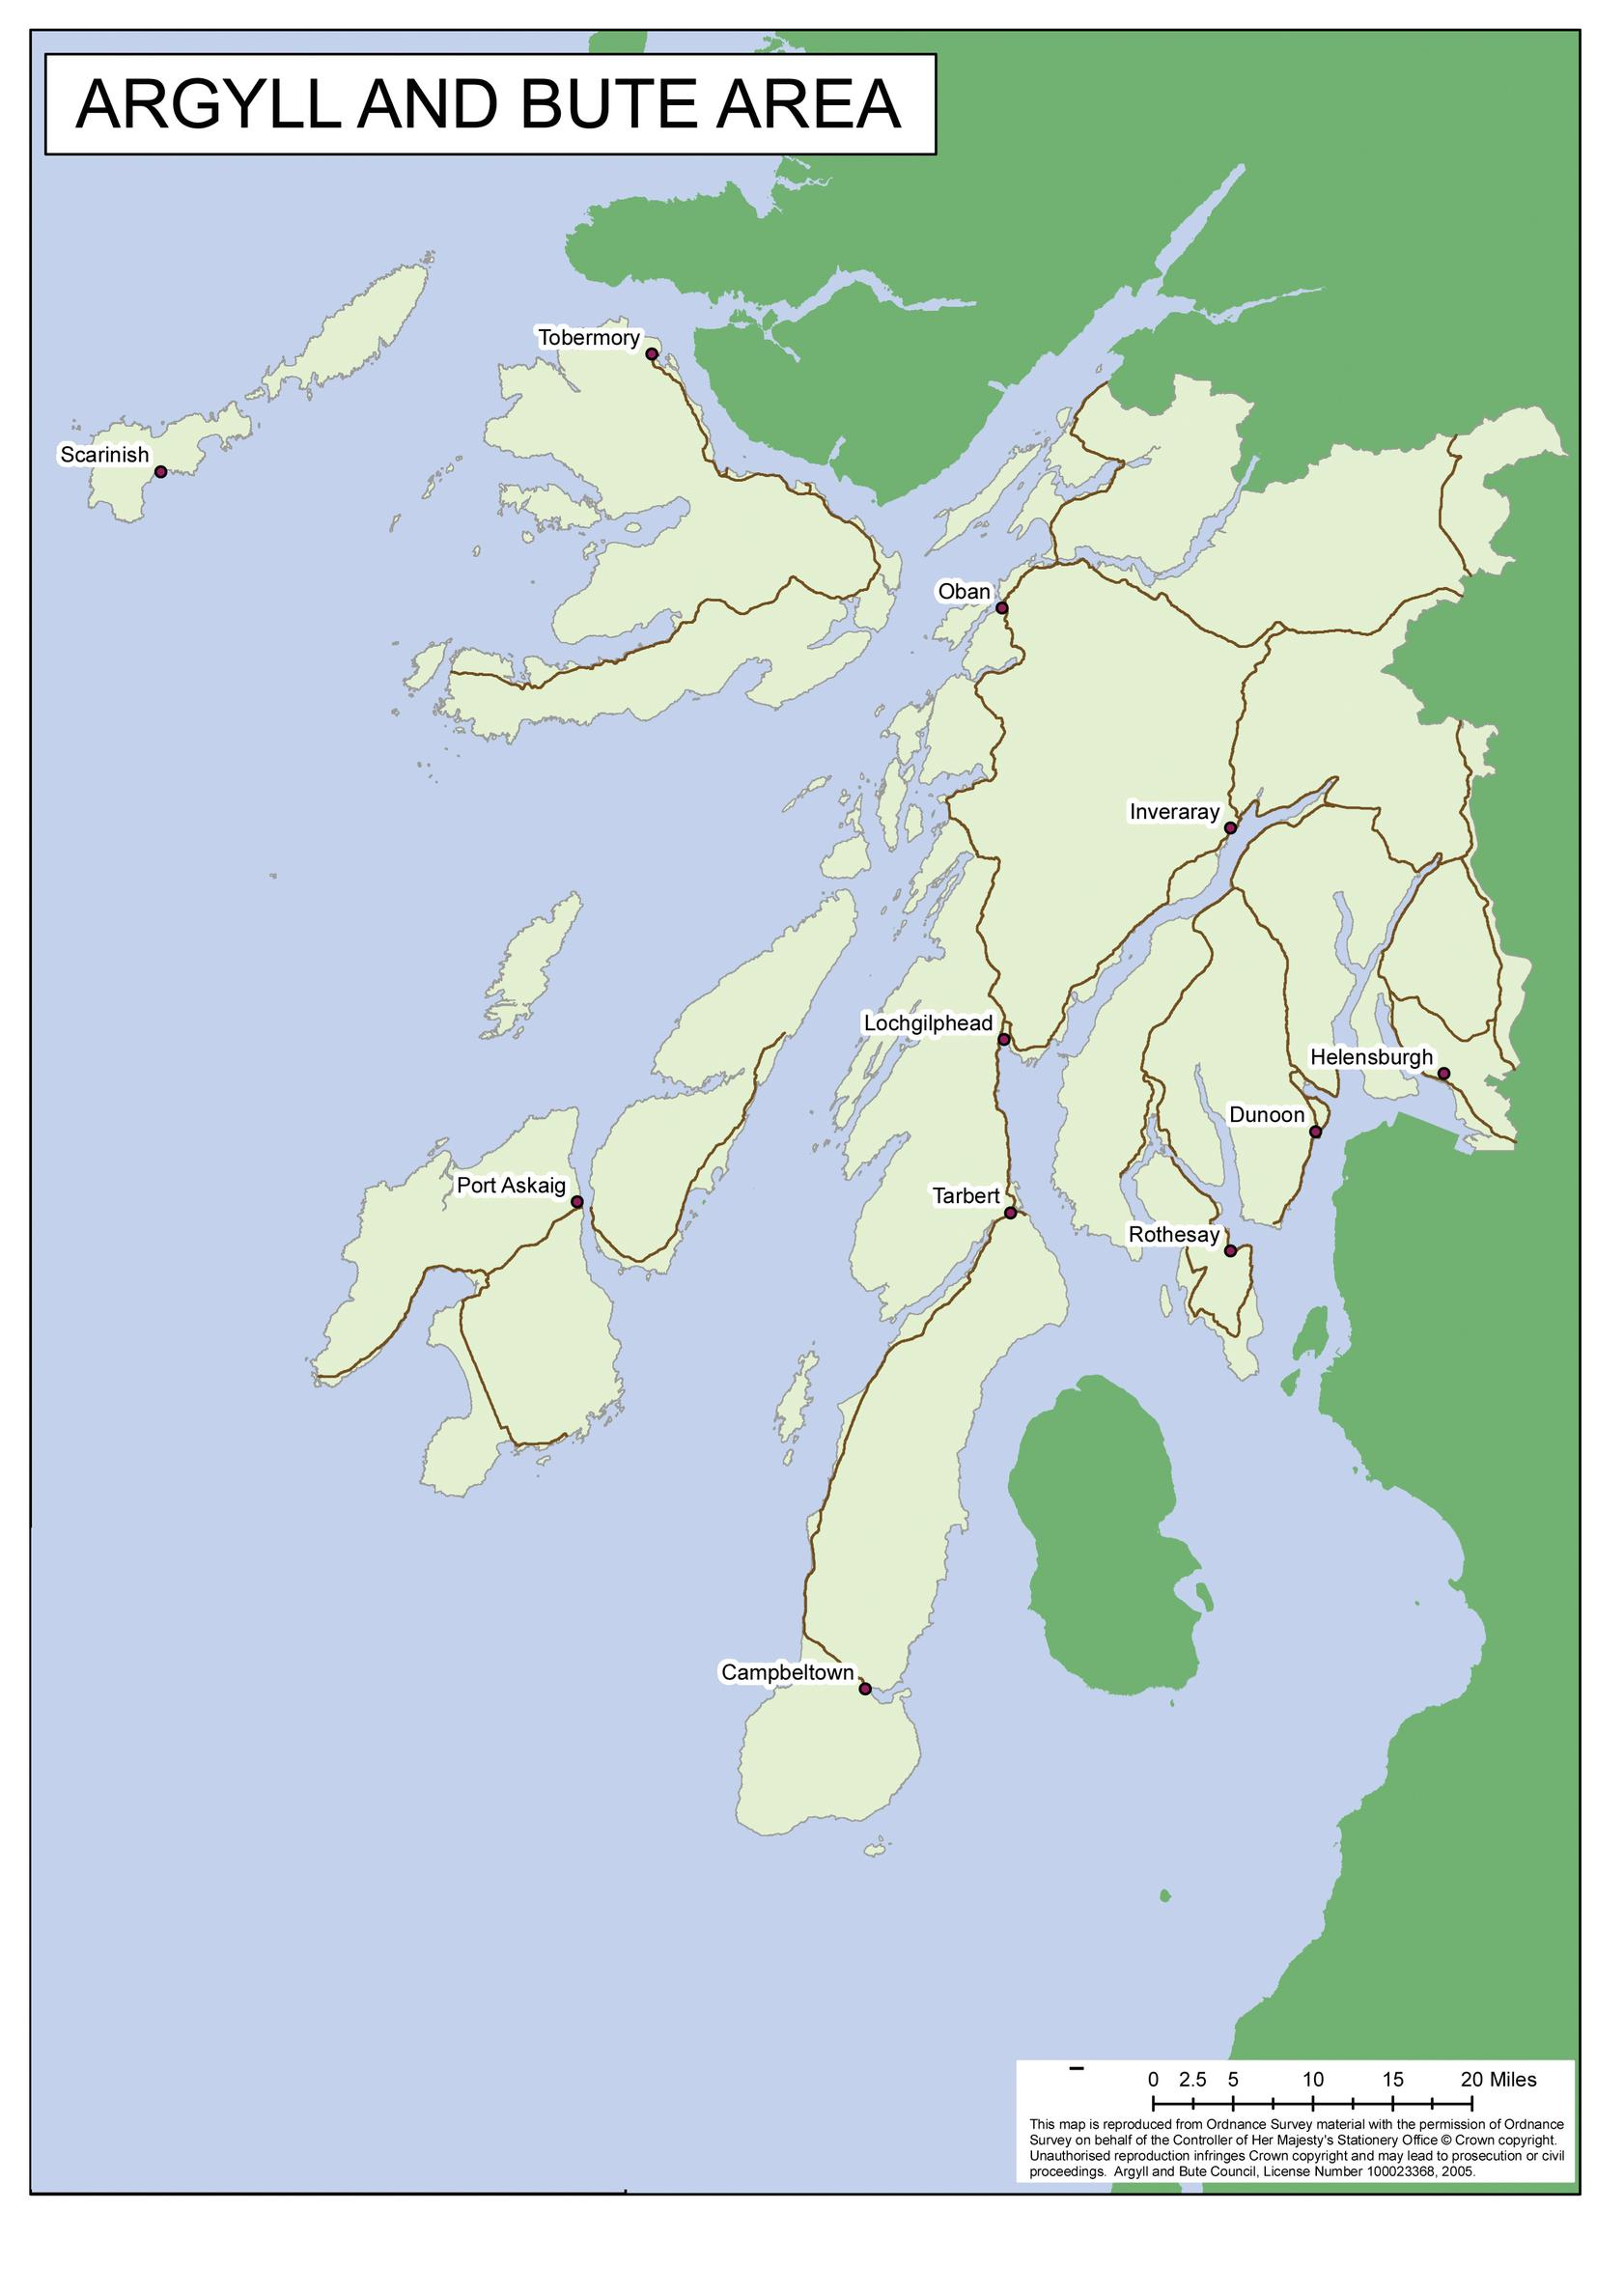 Interest grows in tunnels to improve access to Argyll & Bute